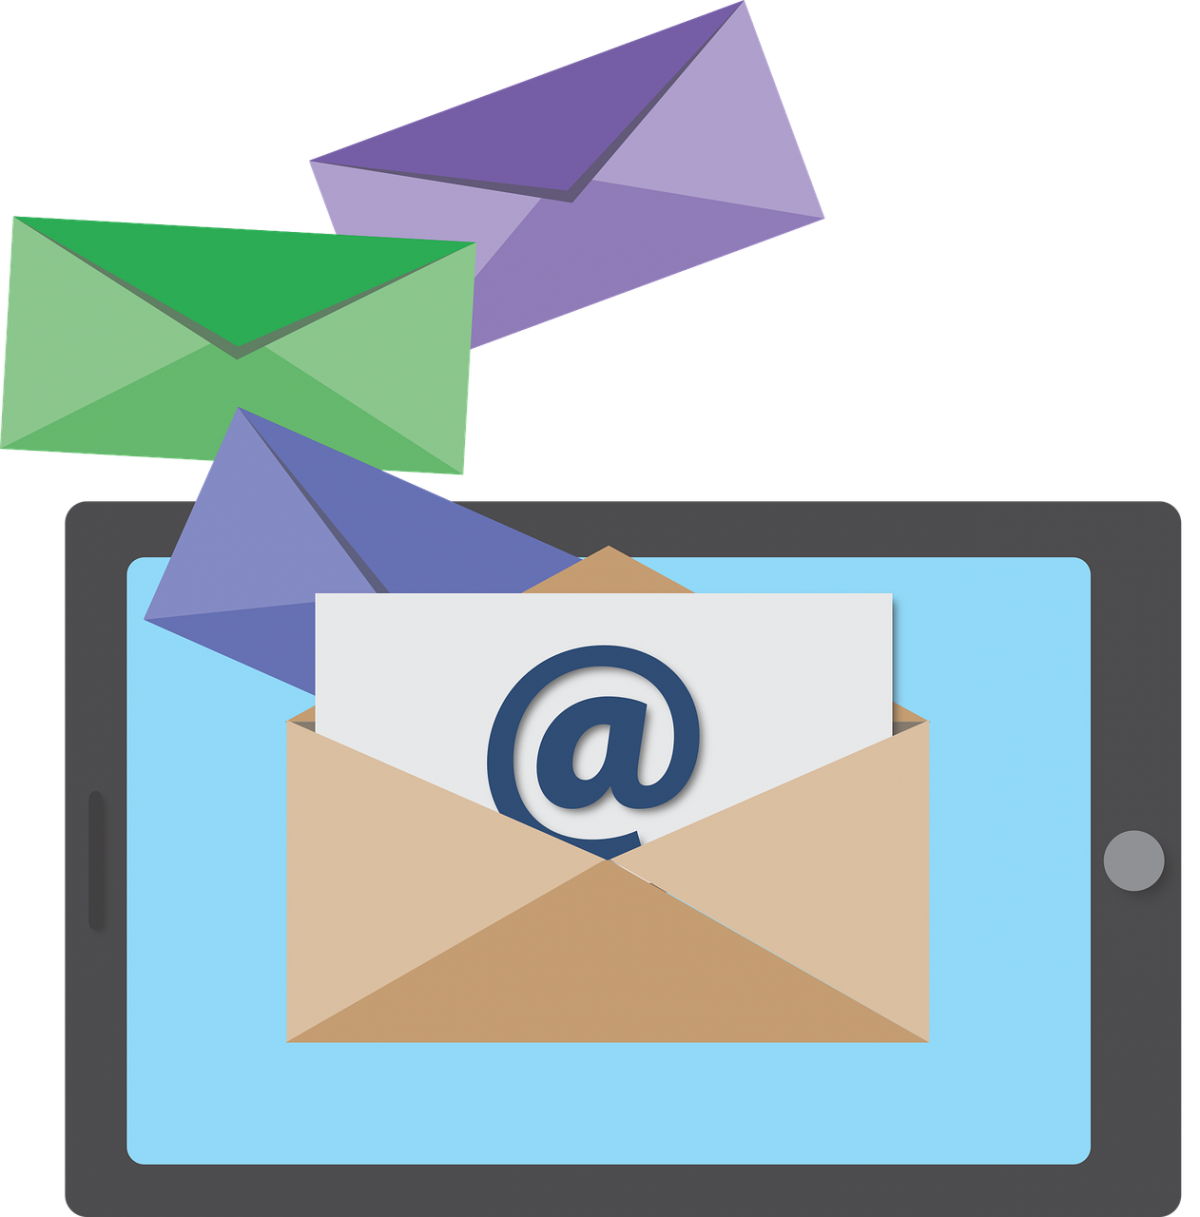 6 reasons why email marketing should top your list